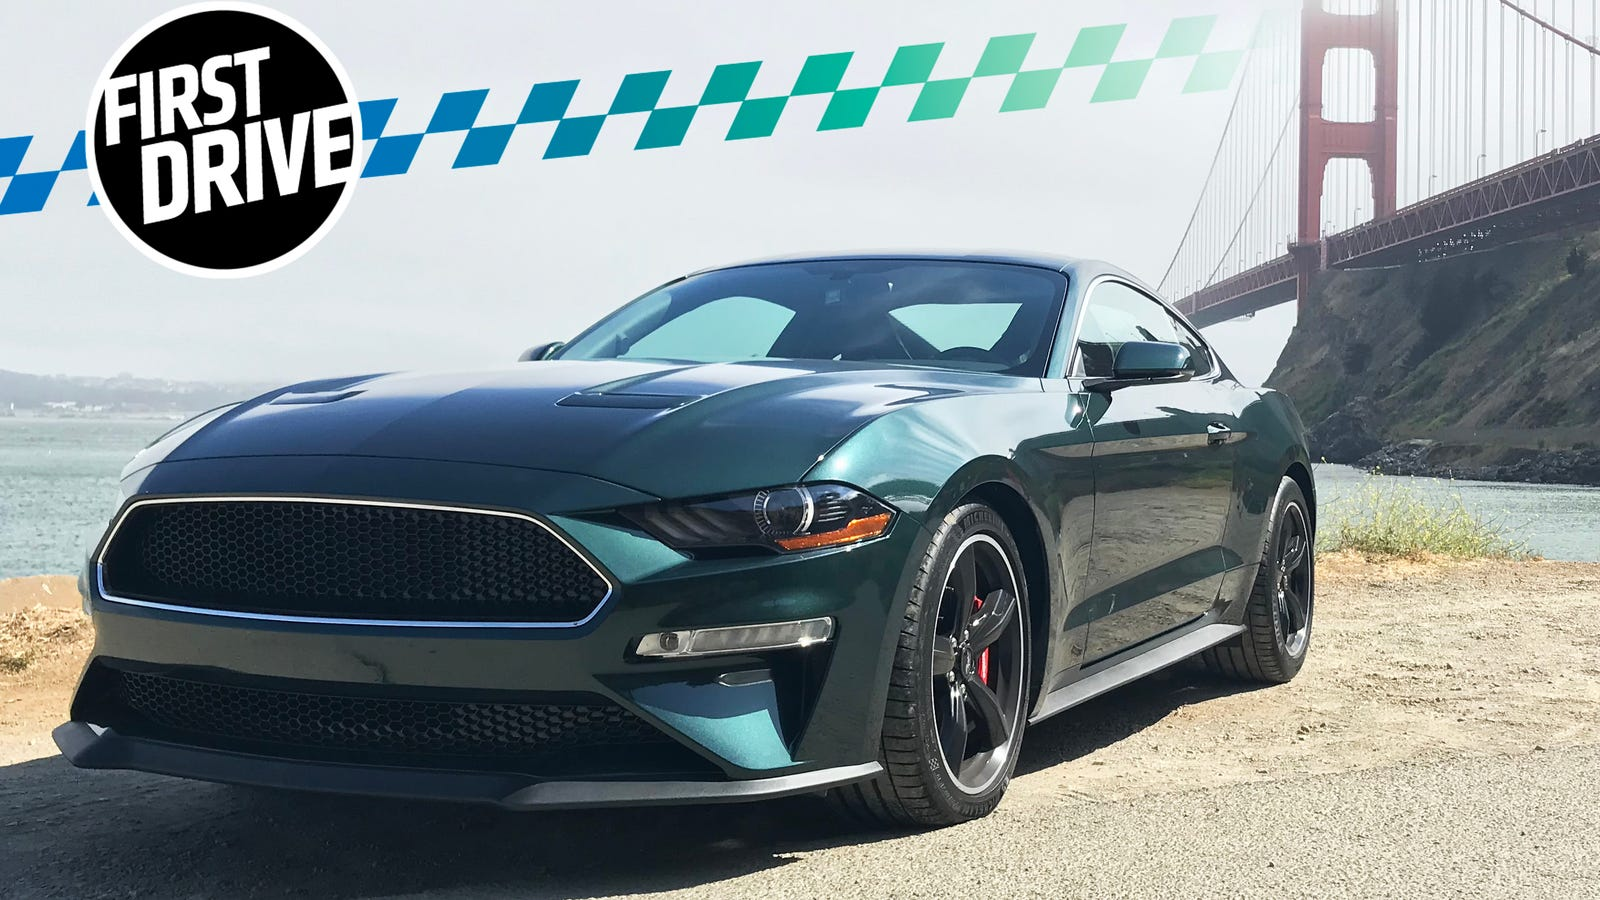 2019 Ford Mustang Sports Car Models Specs Ford Com >> The 2019 Ford Mustang Bullitt Is Everything You Want It To Be